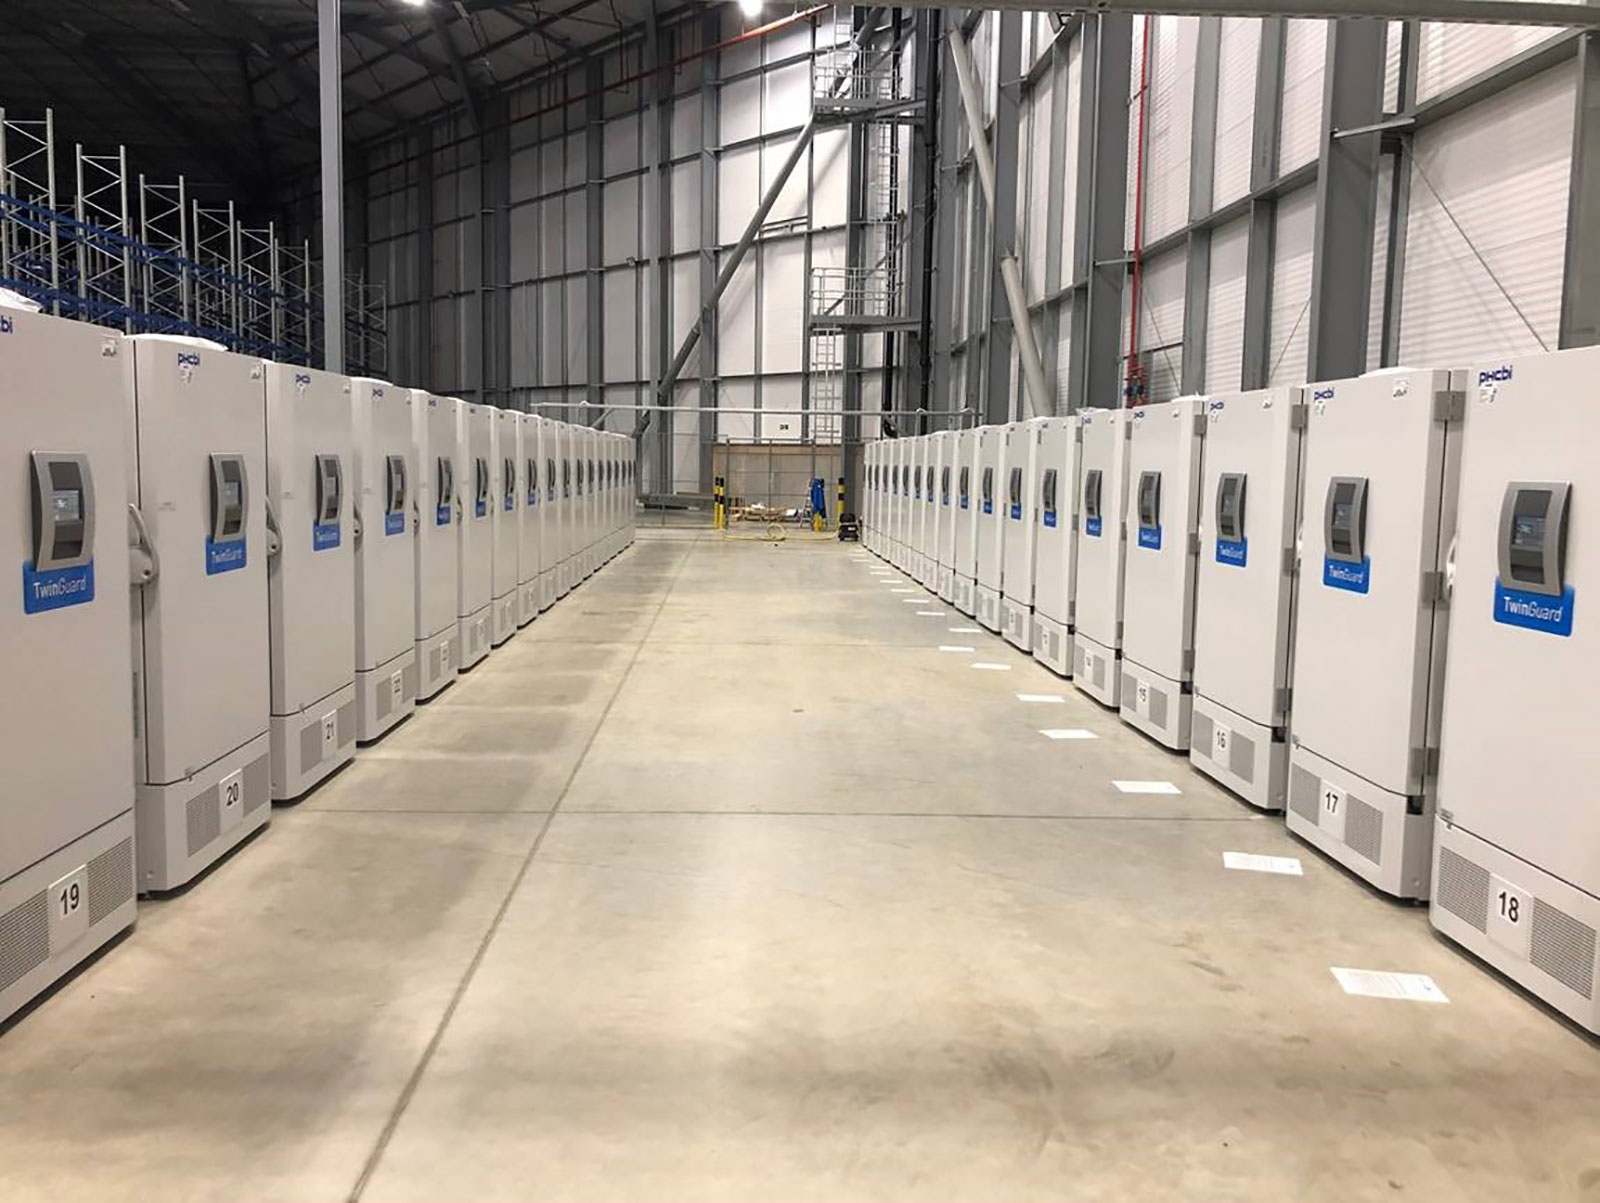 Specialist Covid-19 vaccine freezers in a secure location, awaiting distribution of the vaccines to the NHS.